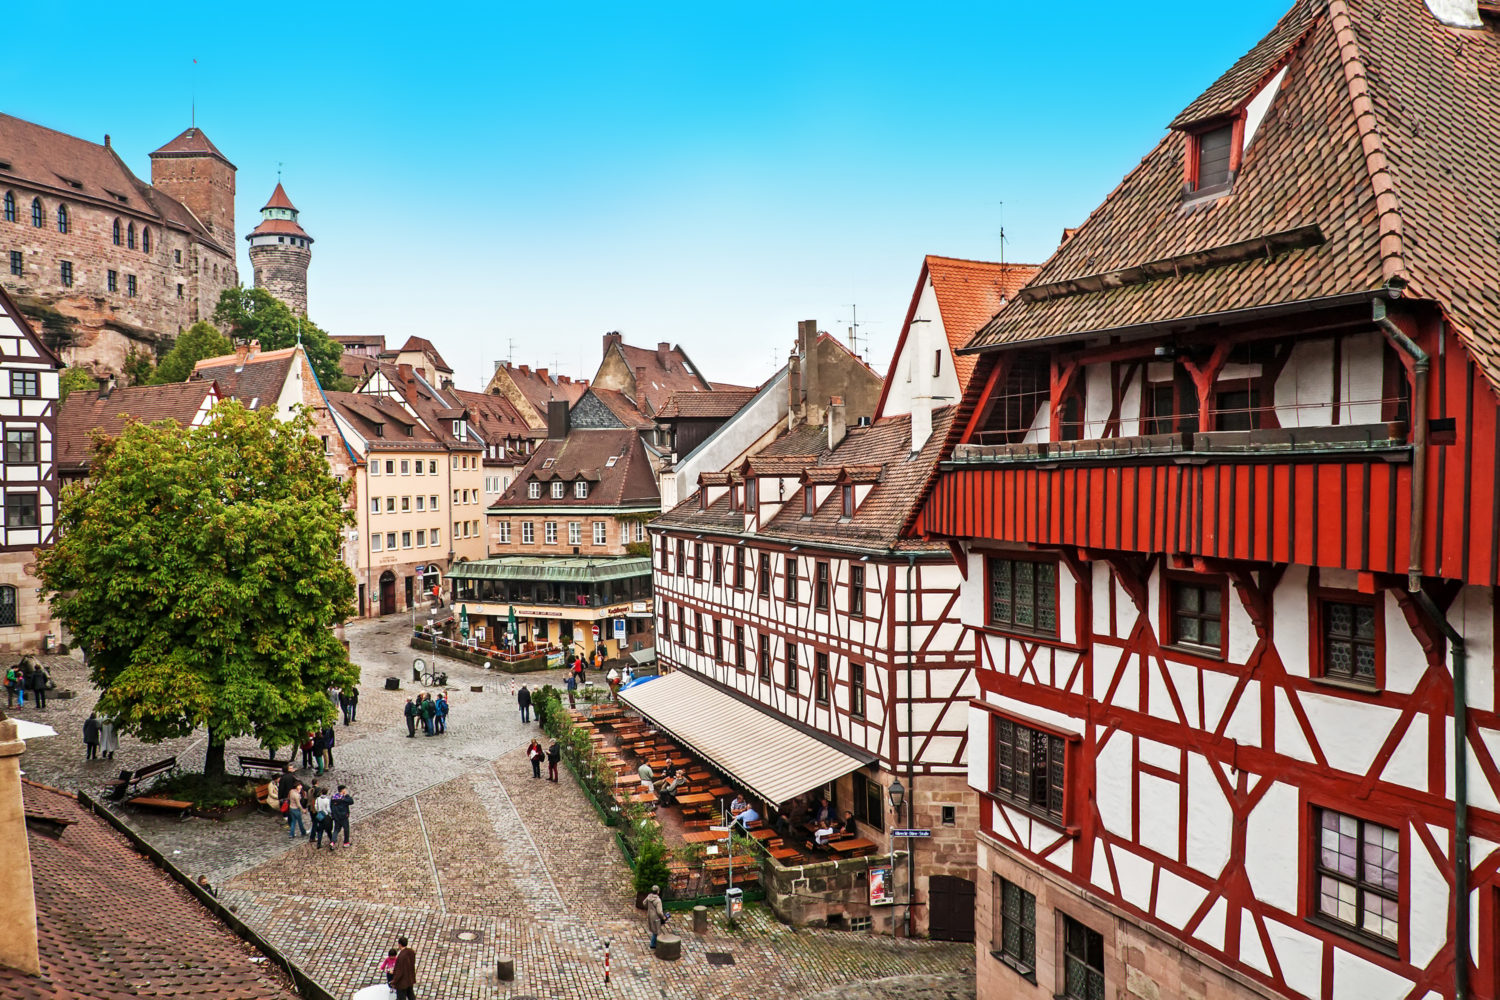 Street view with historic buildings in Nurnberg, Germany while on a road trip from Prague to Munich